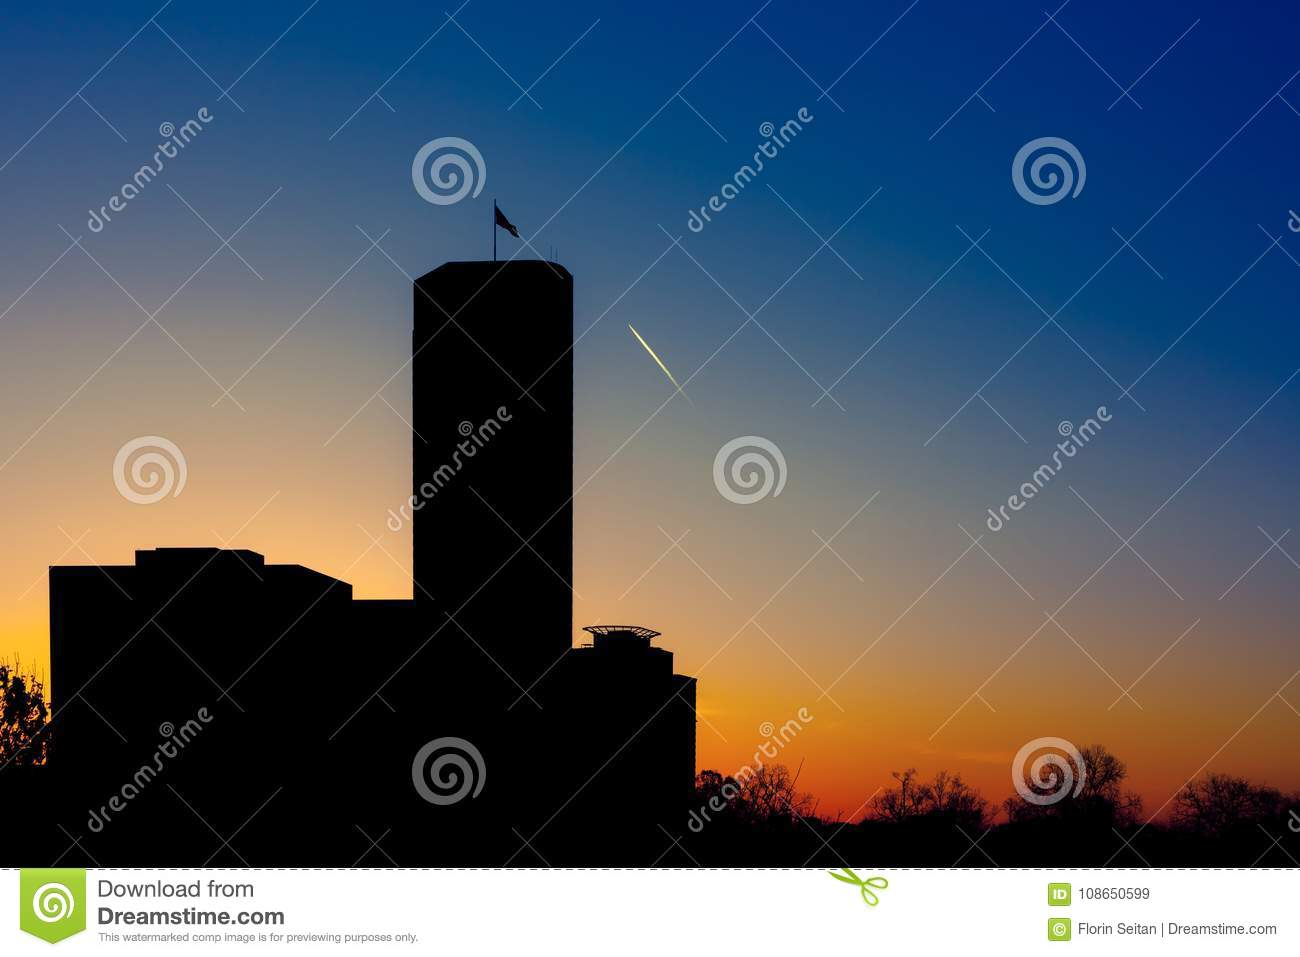 Silhouette of skyscraper with flag on top against a gradient twilight sky with turbojet trails